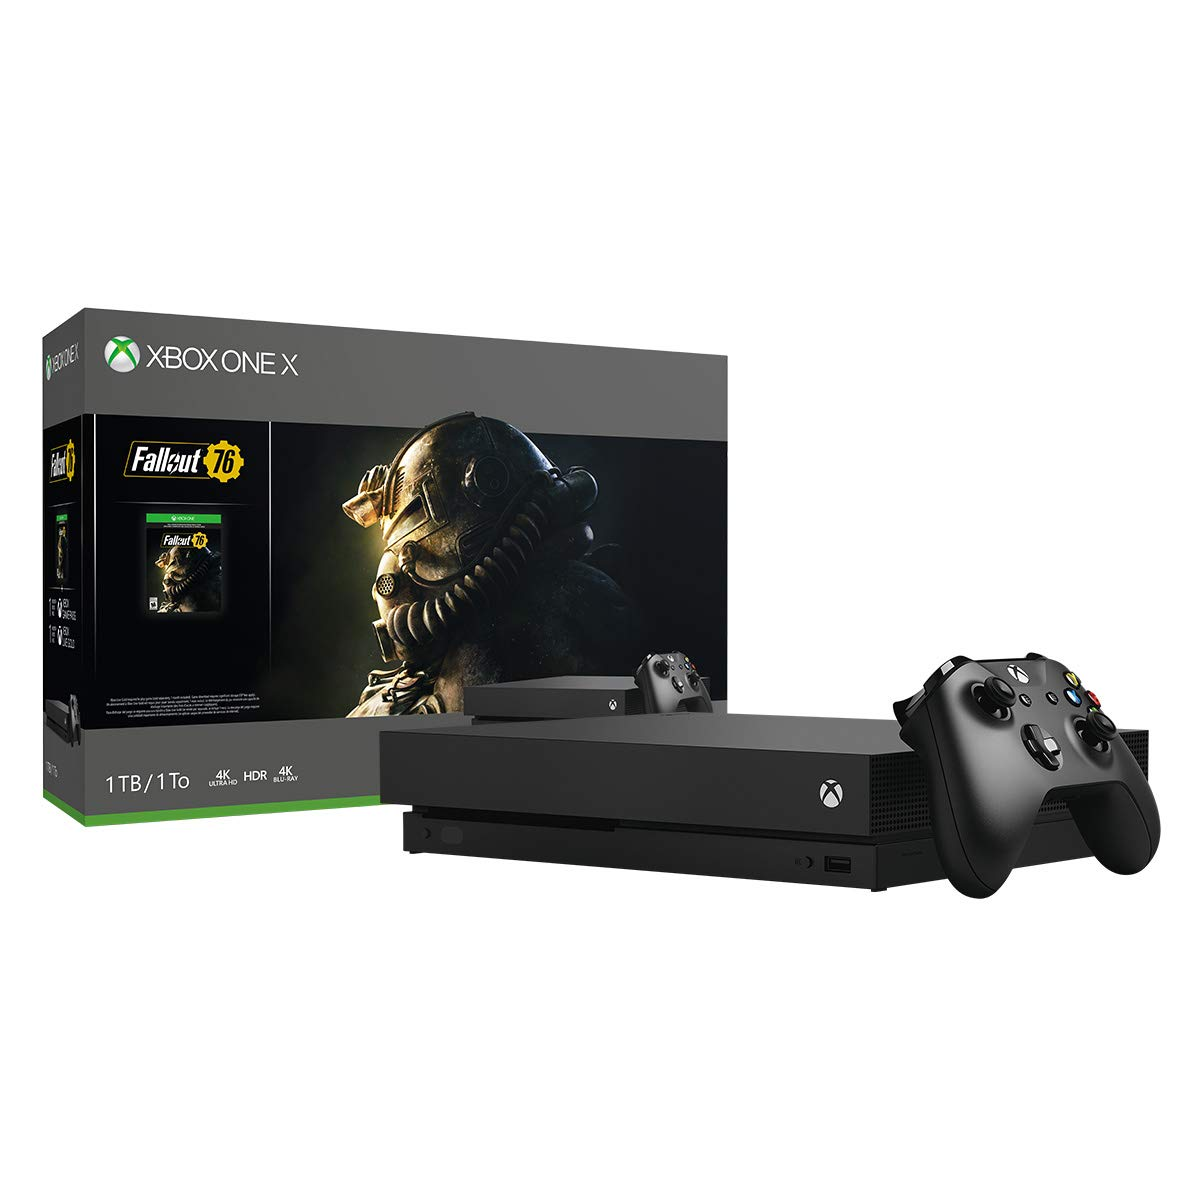 Xbox One X 1TB Console - Fallout 76 Bundle (Discontinued) by Microsoft (Image #2)